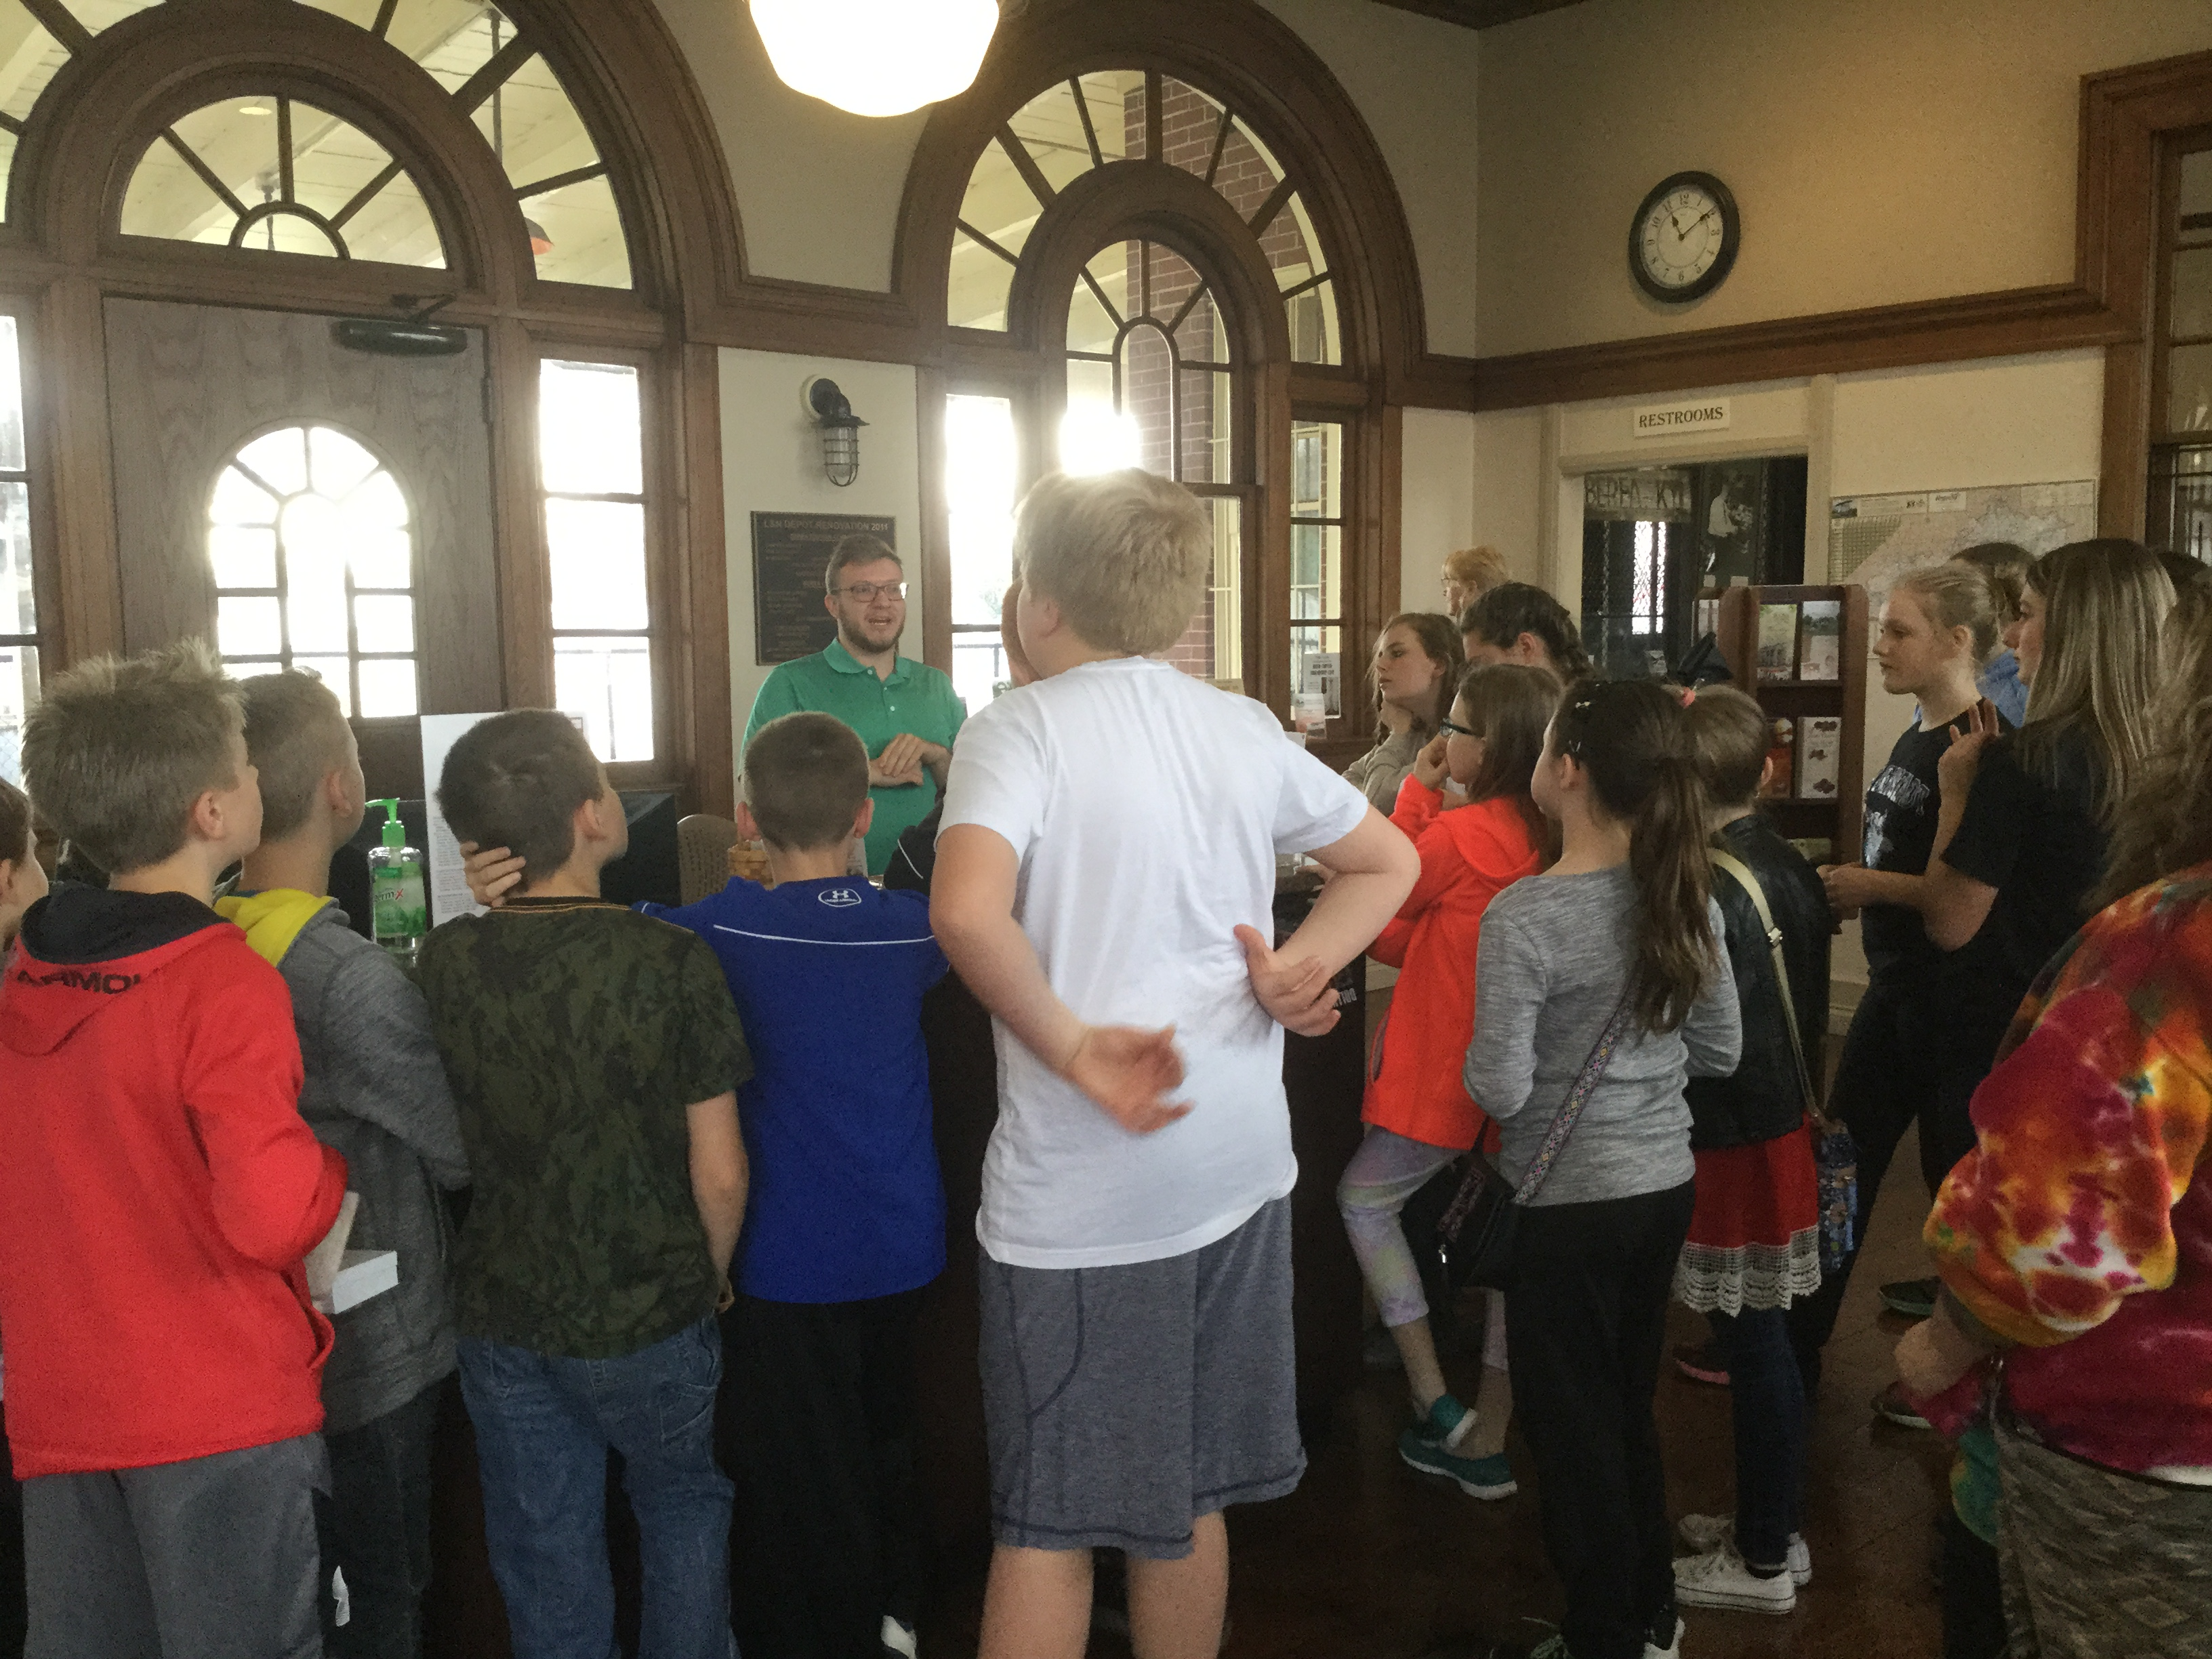 Middle School and Elementary Academic Teams visited the Berea Community Art Show